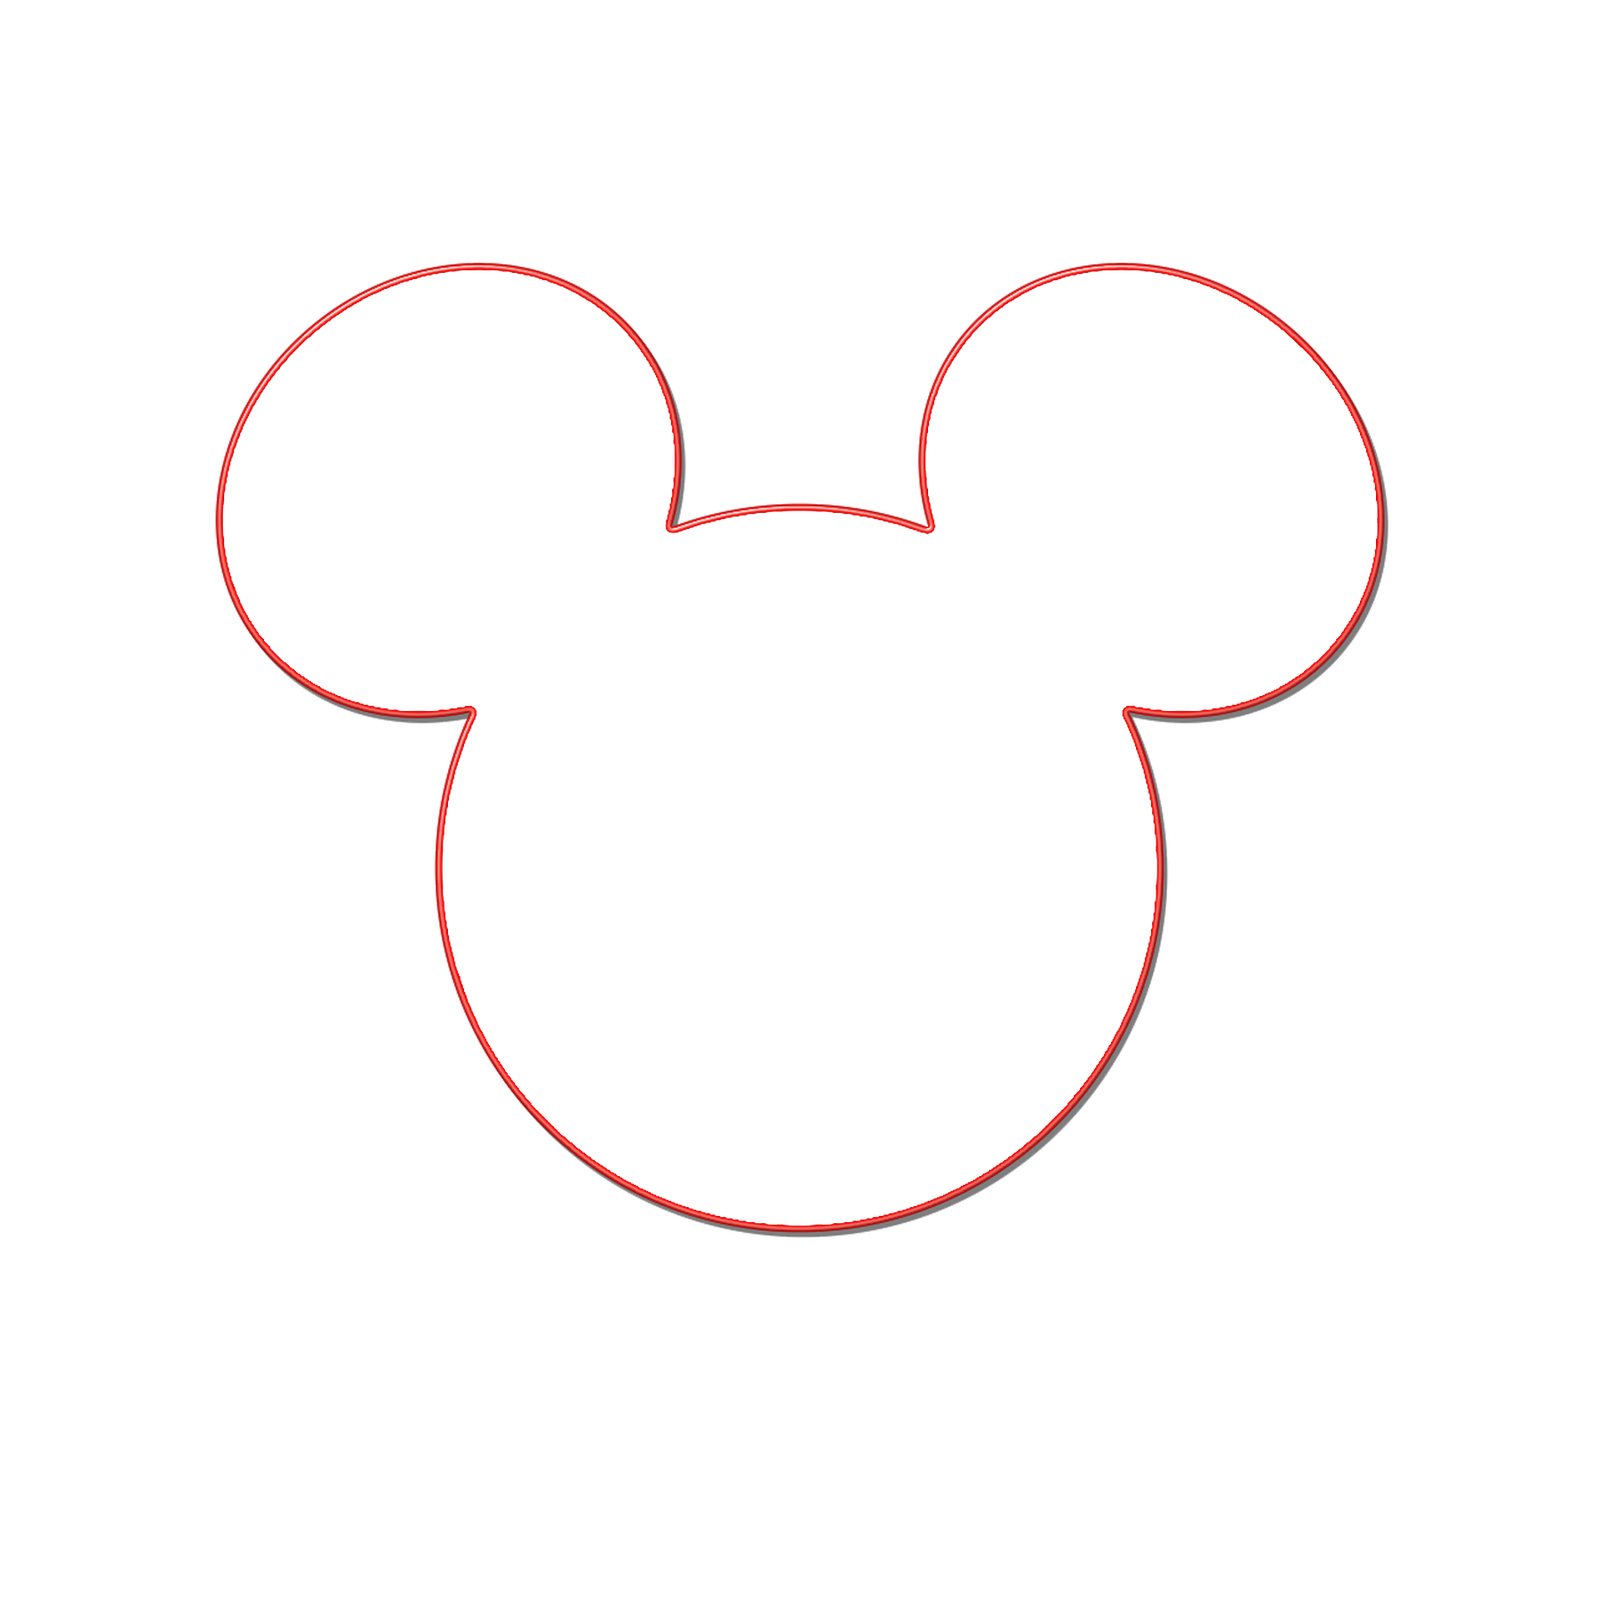 Mickey mouse head outline png. Milliepie s musings making